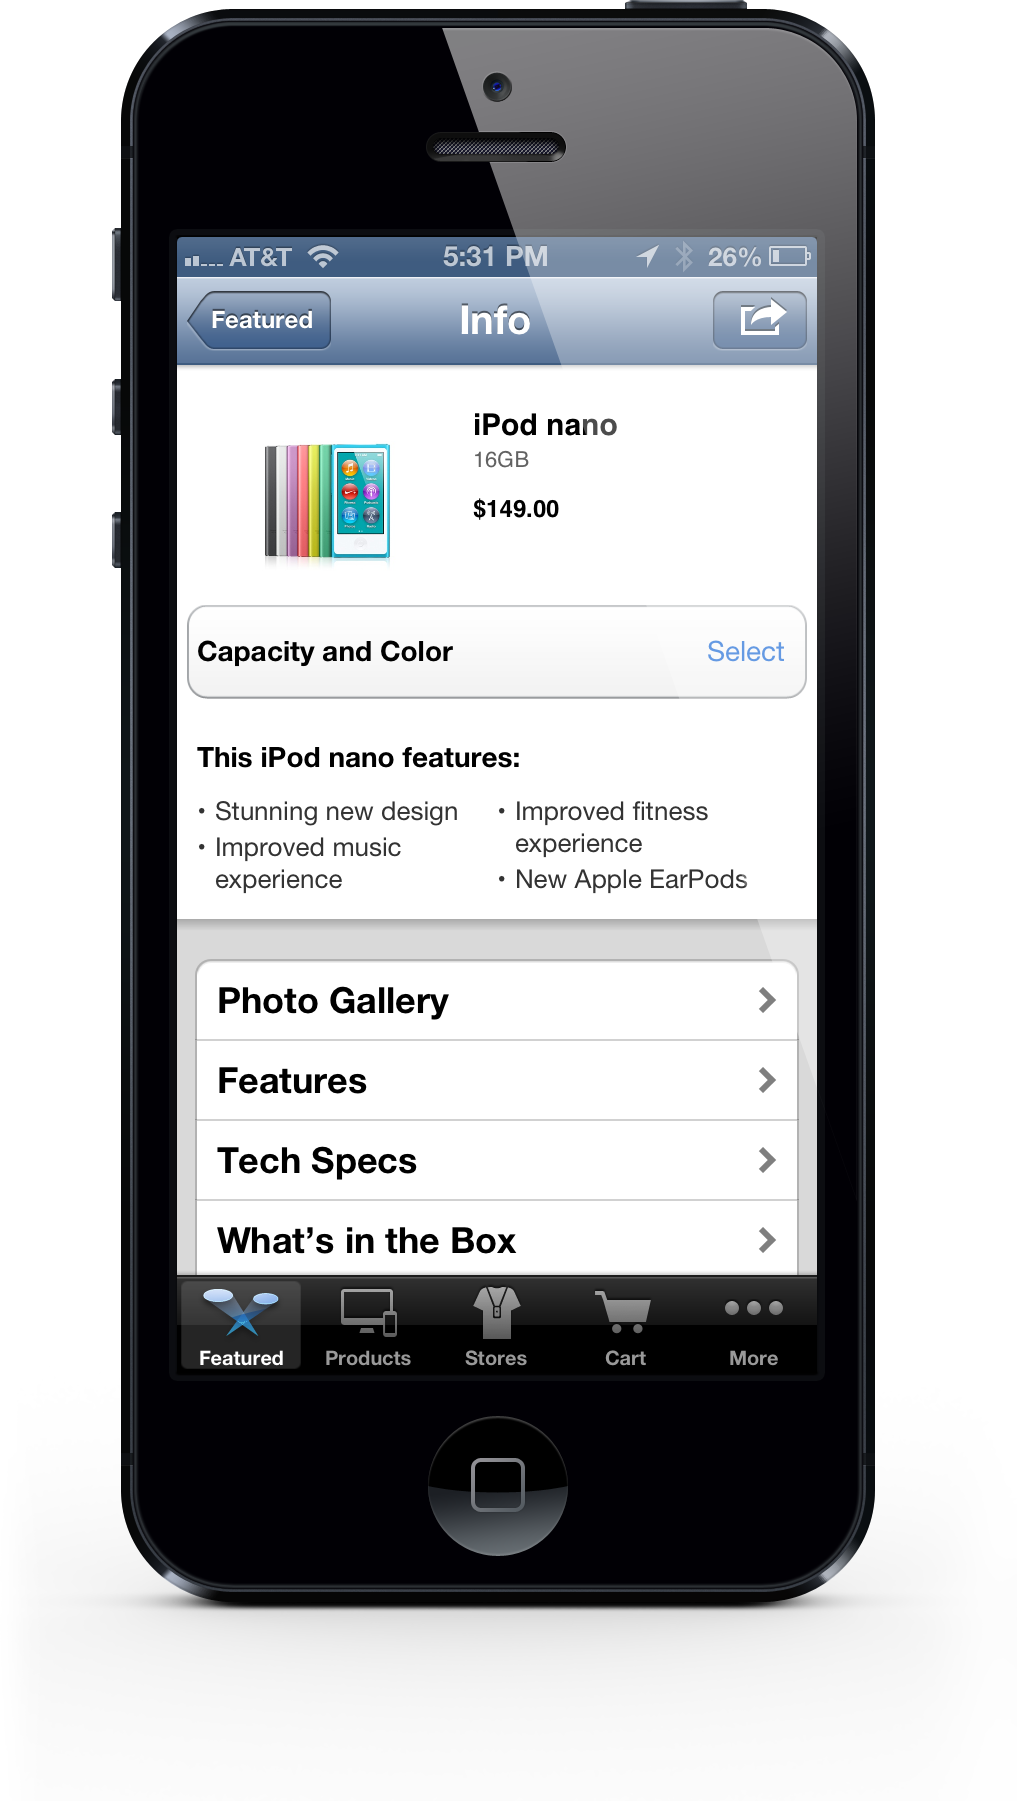 iphone 5 apple store pop apple app updated for iphone 5 support 5121